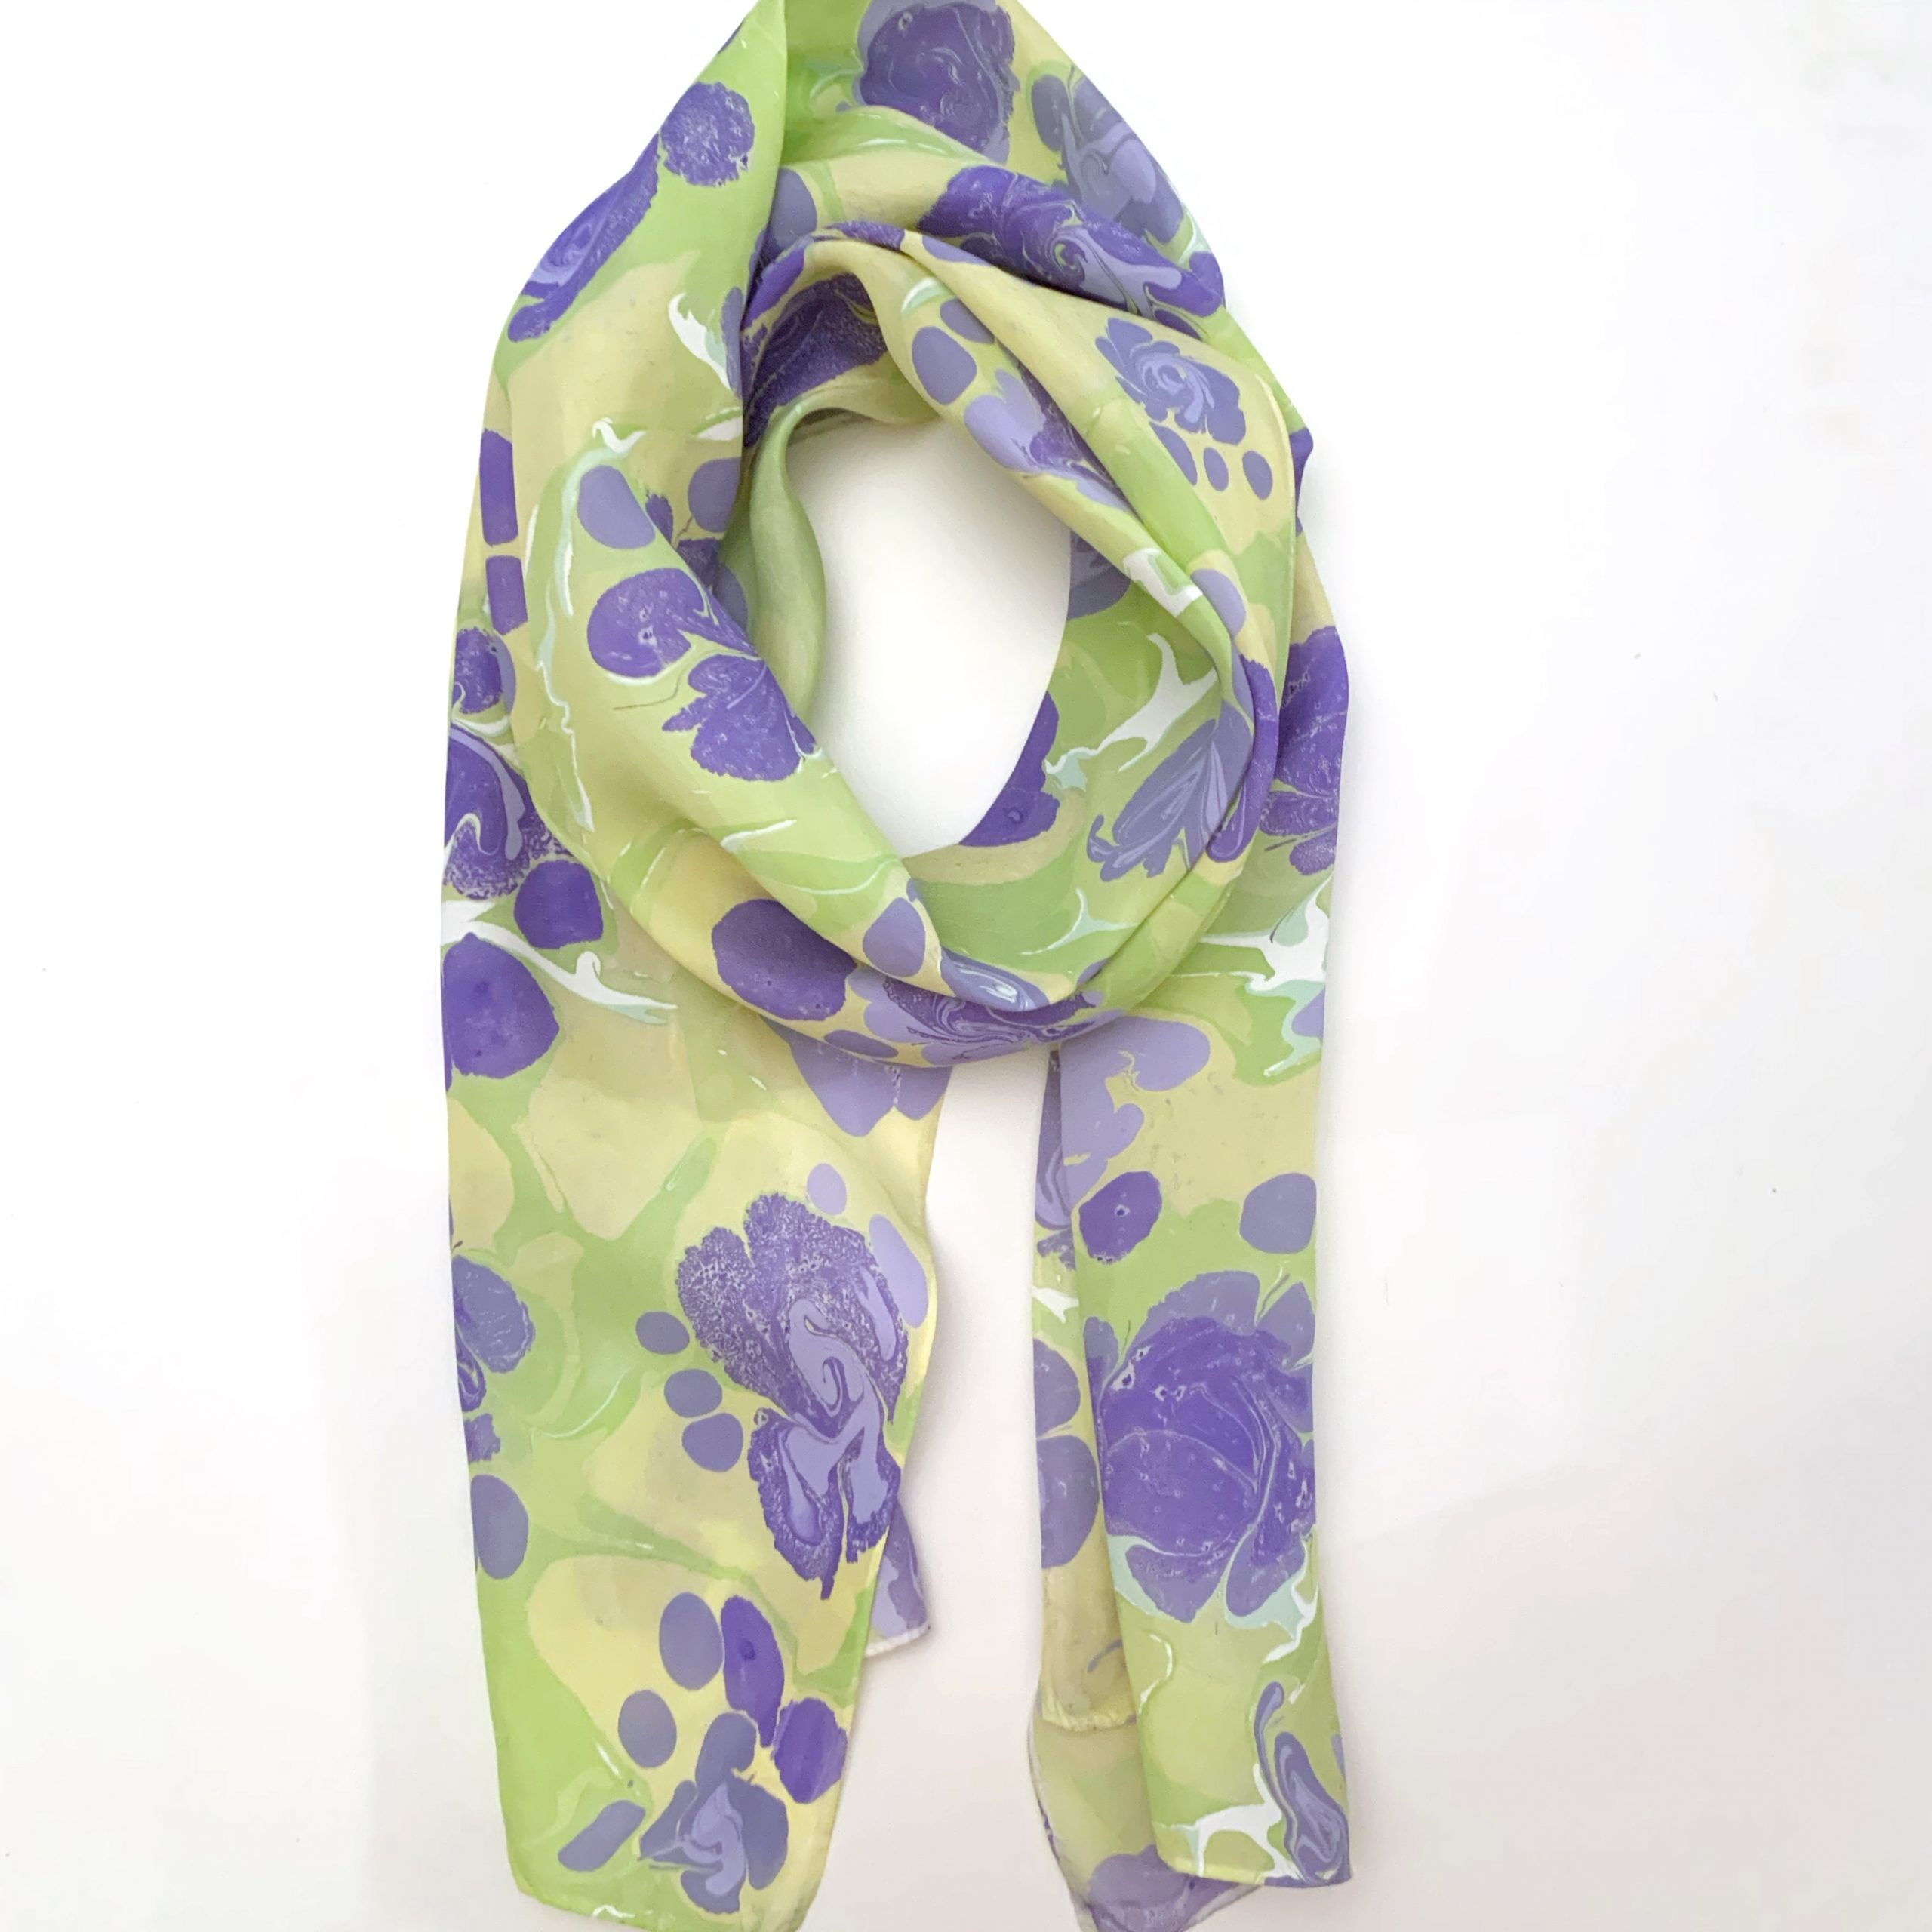 Greena nd Lavender Lightweight Scarf